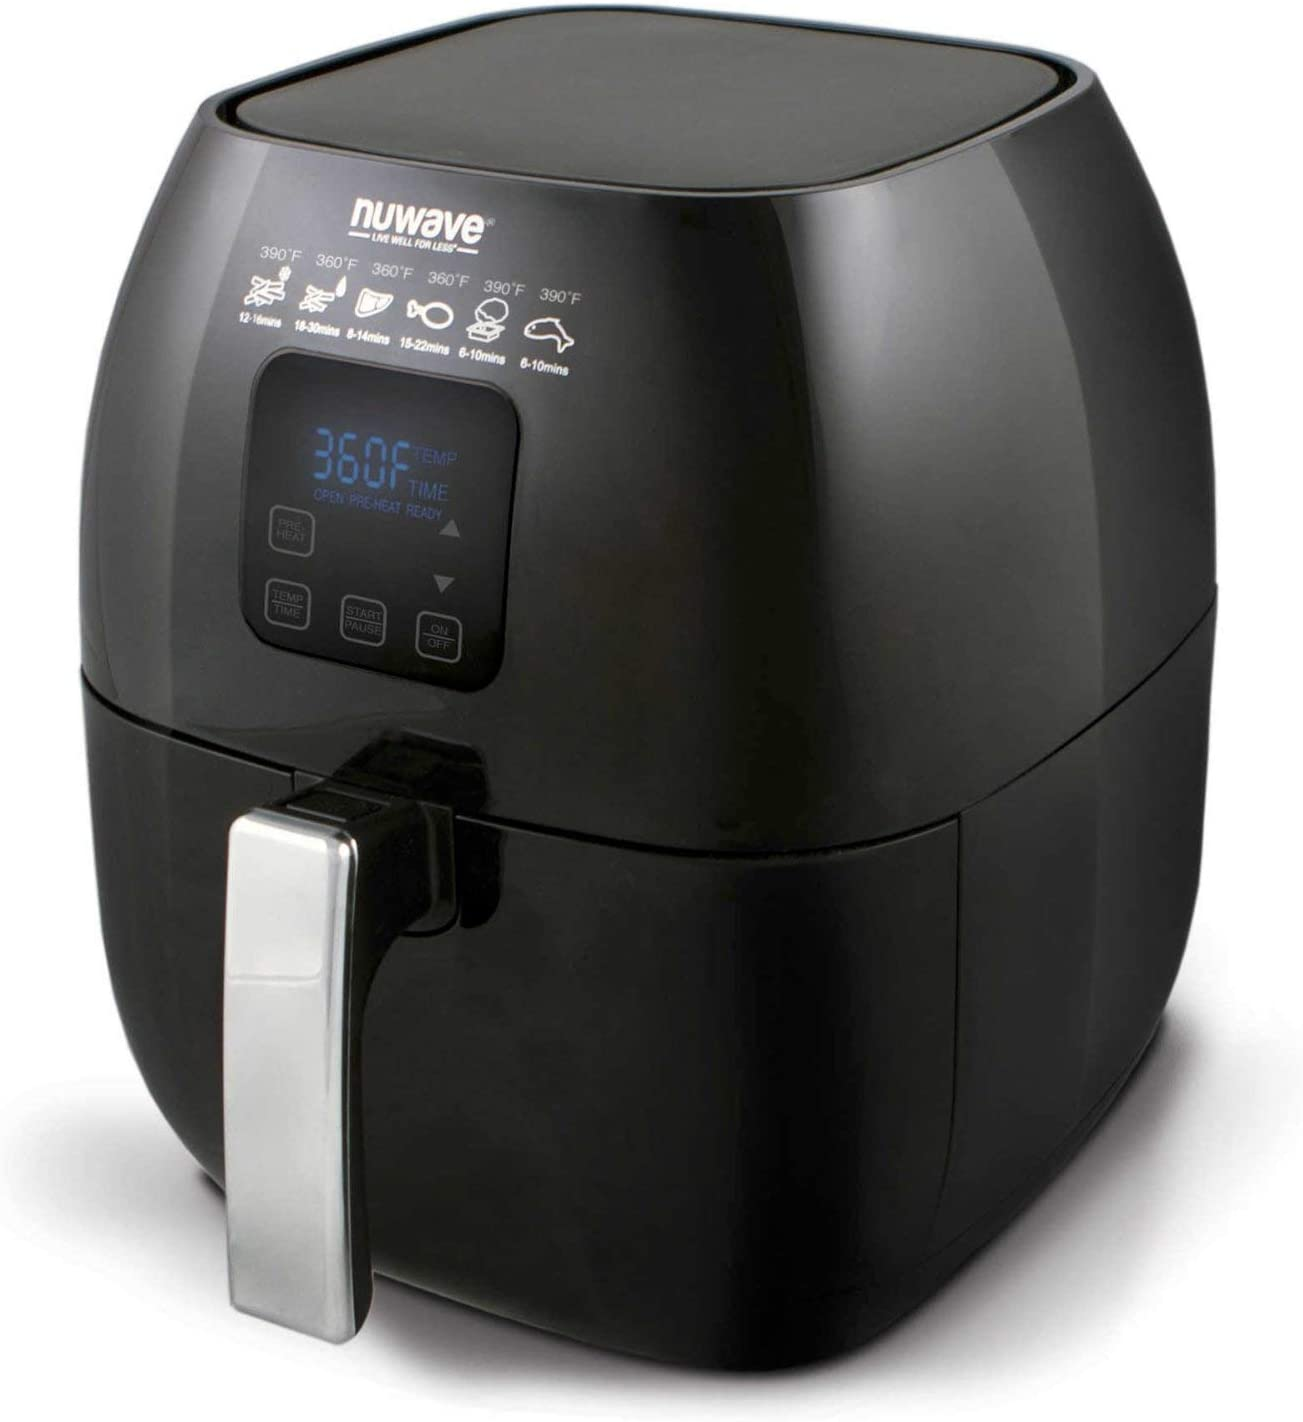 NuWave Versatile Brio Air Fryer with One-Touch Controls Digital Max 87% Sale special price OFF